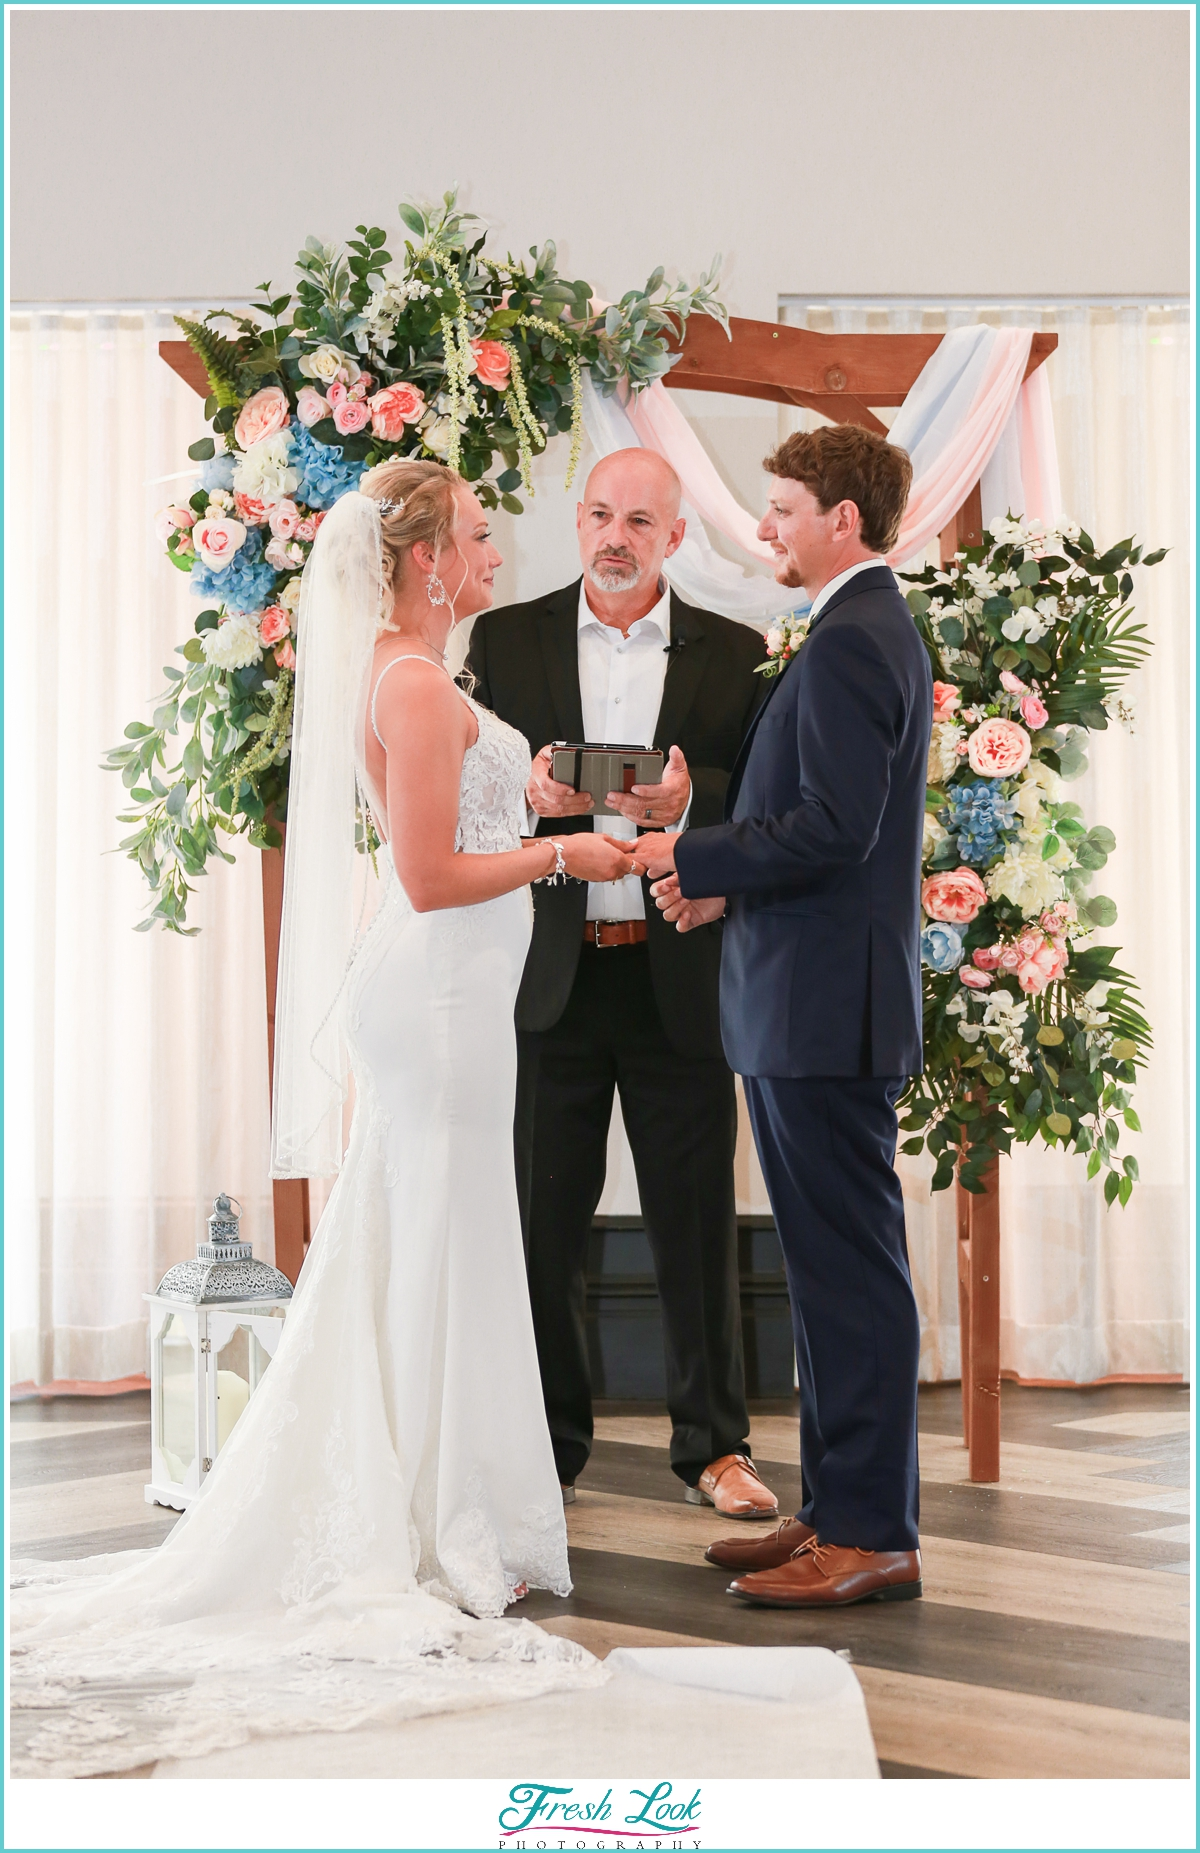 exchanging of rings at wedding ceremony